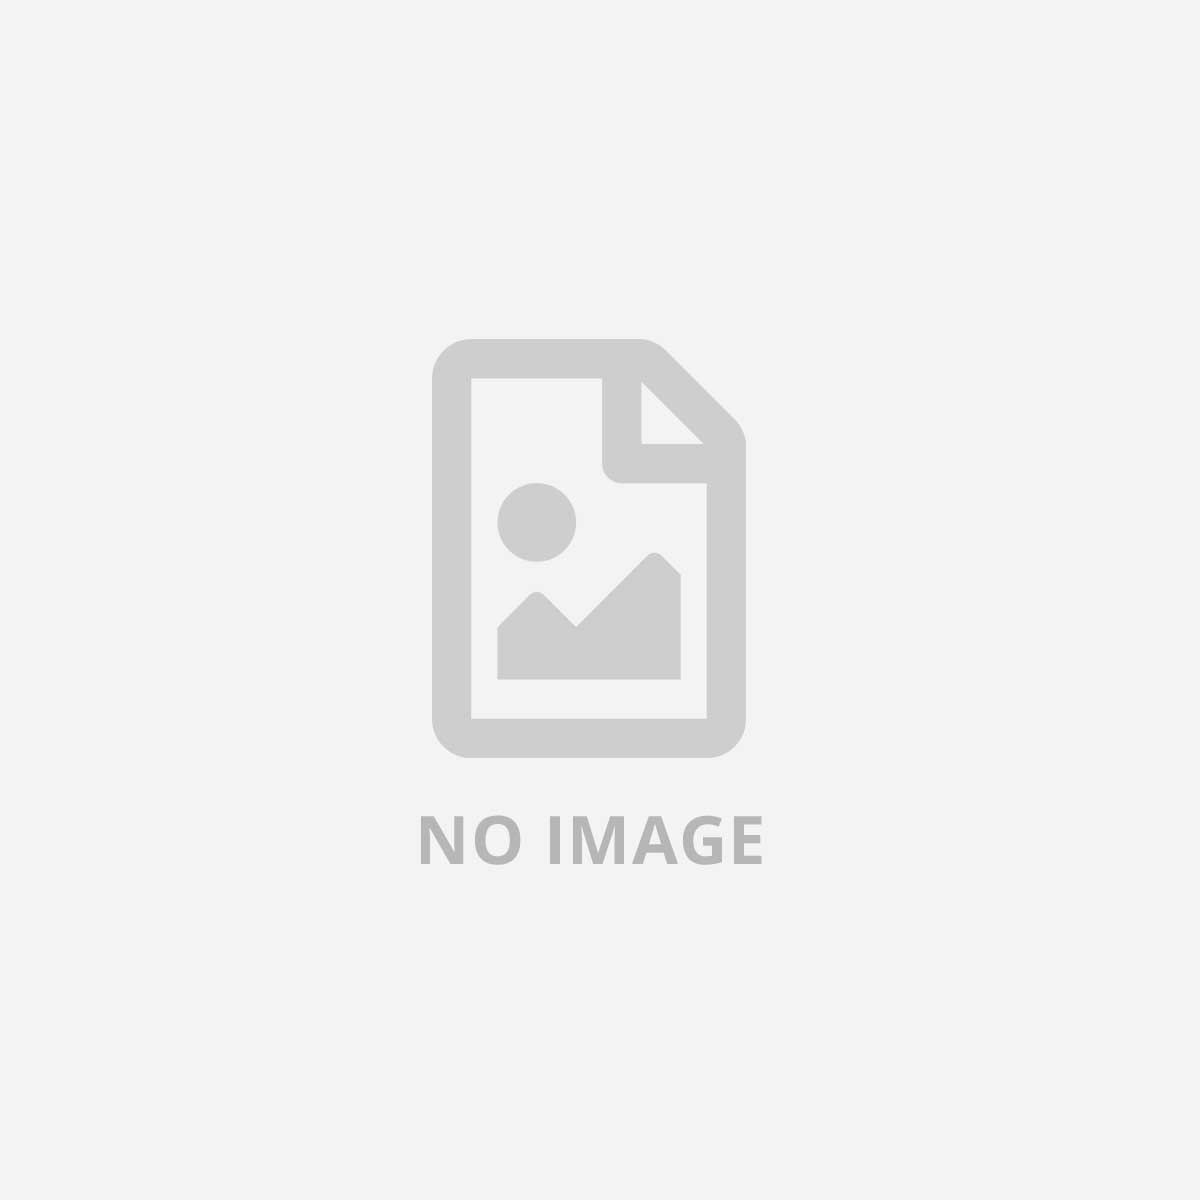 NILOX CAVO AUDIO 1.5MT JACK TO 2 X RCA